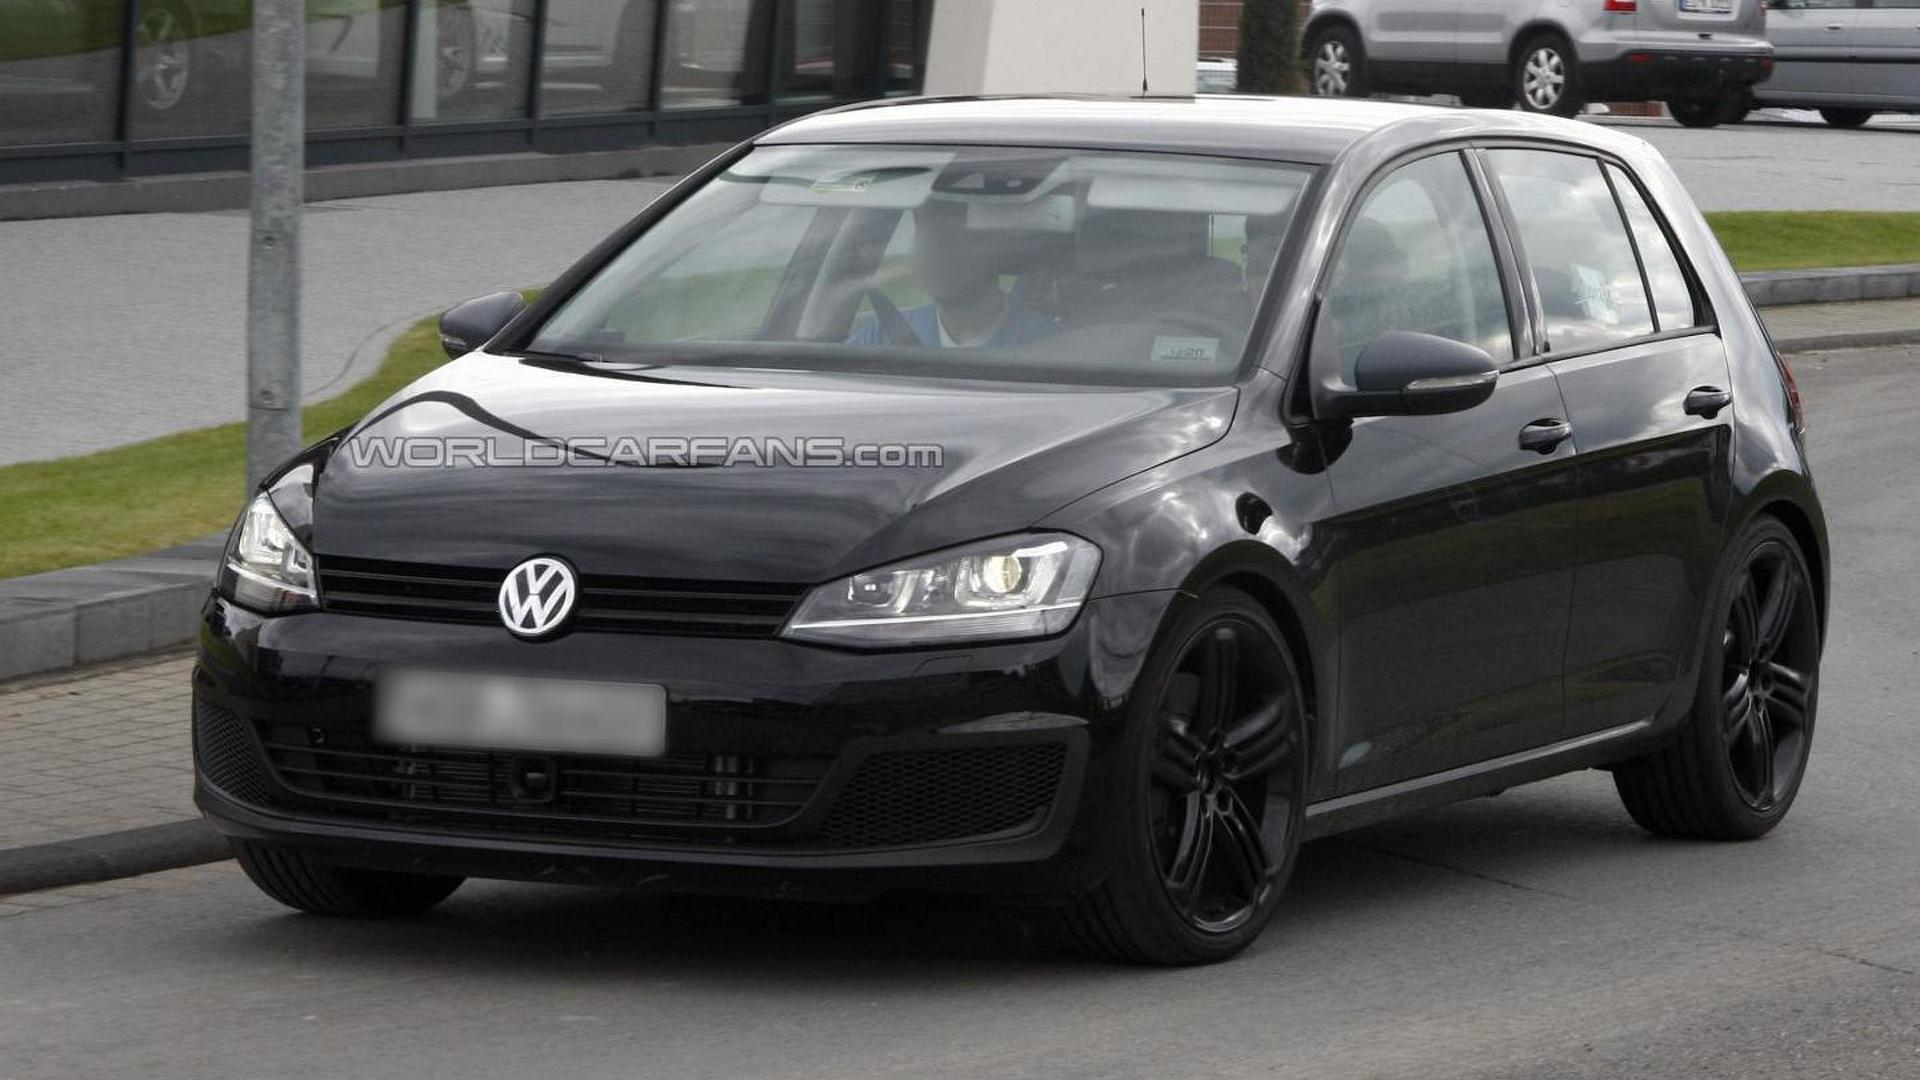 Volkswagen Golf VII R spied without camo